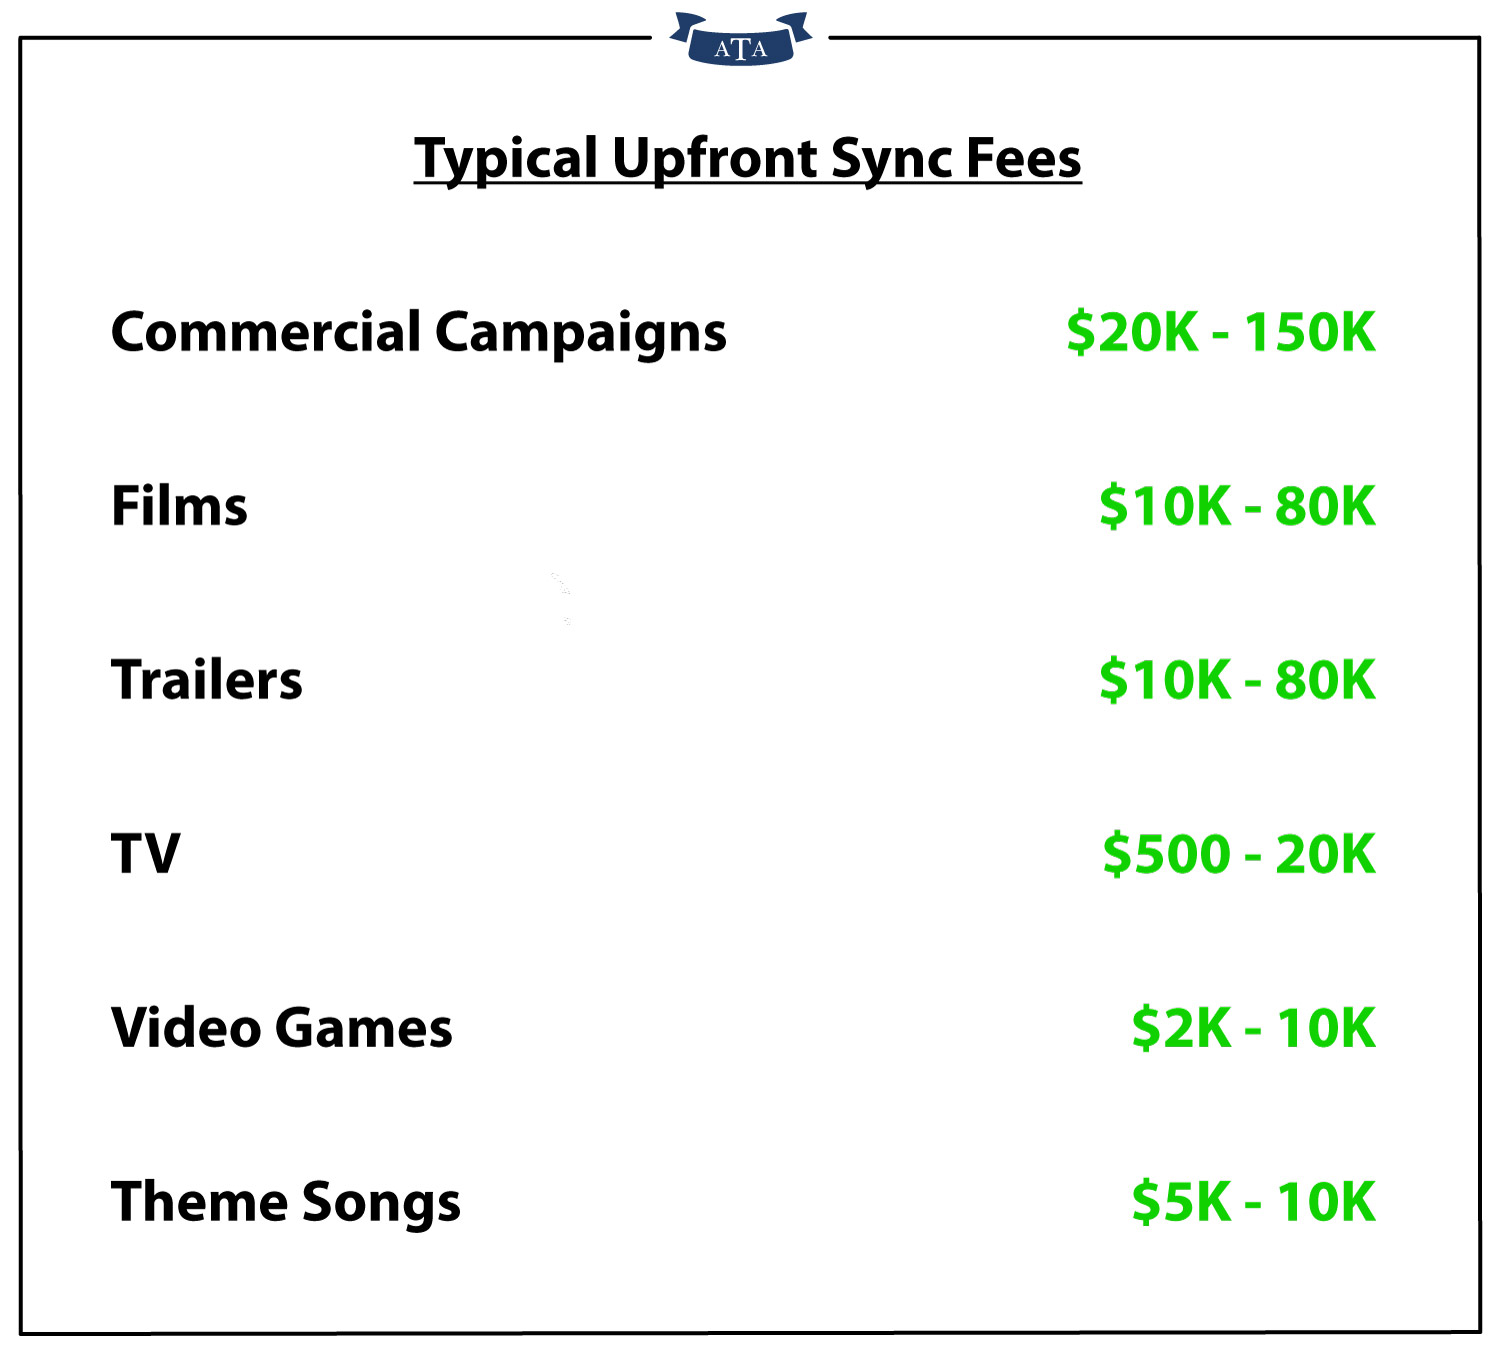 Typical upfront sync licensing fees